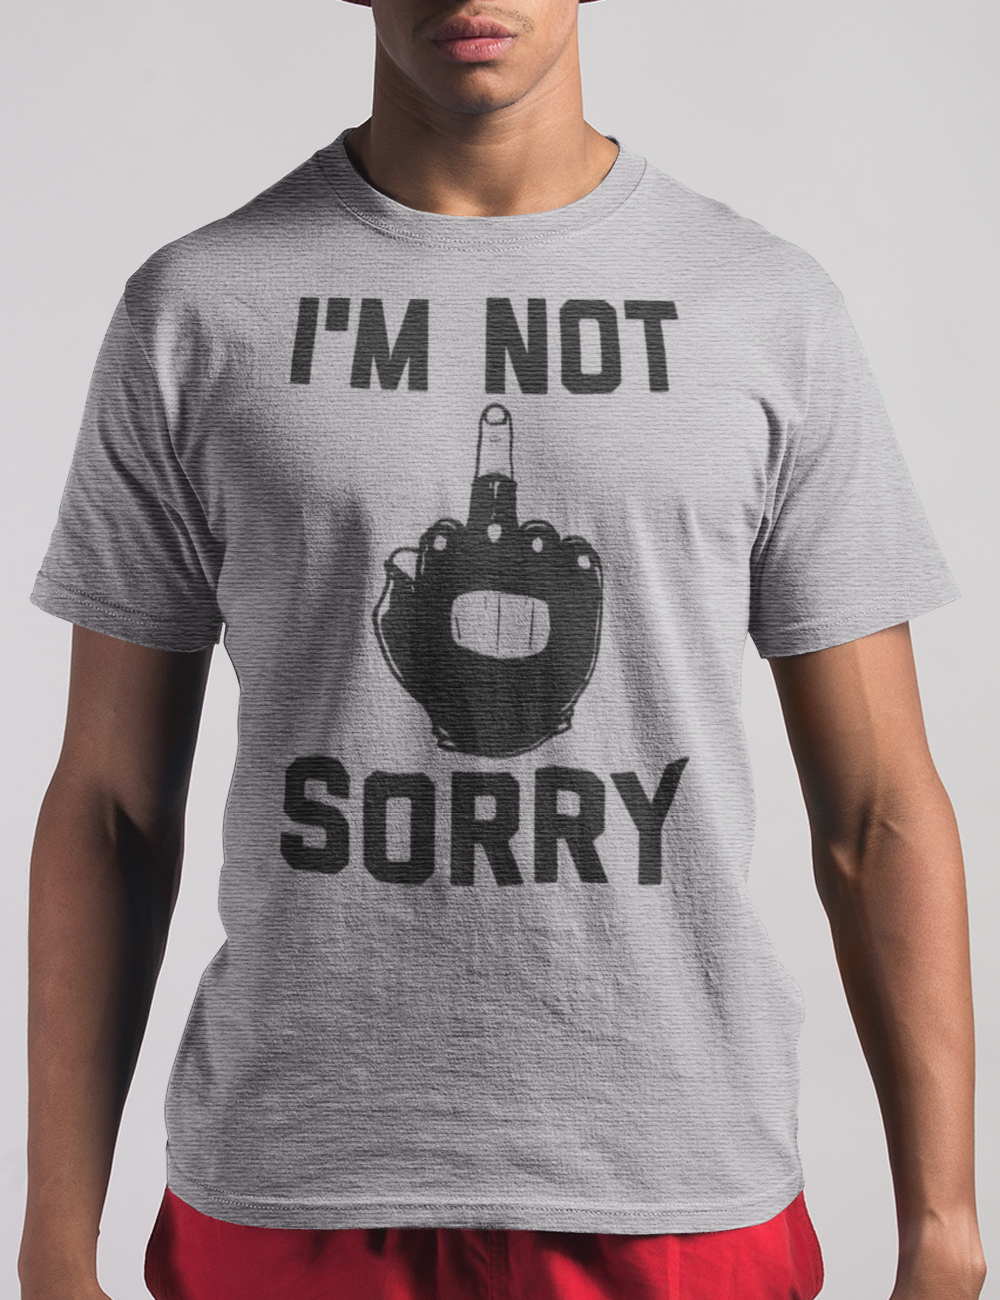 I'm Not Sorry - Men's Heather Grey T-Shirt by OniTakai